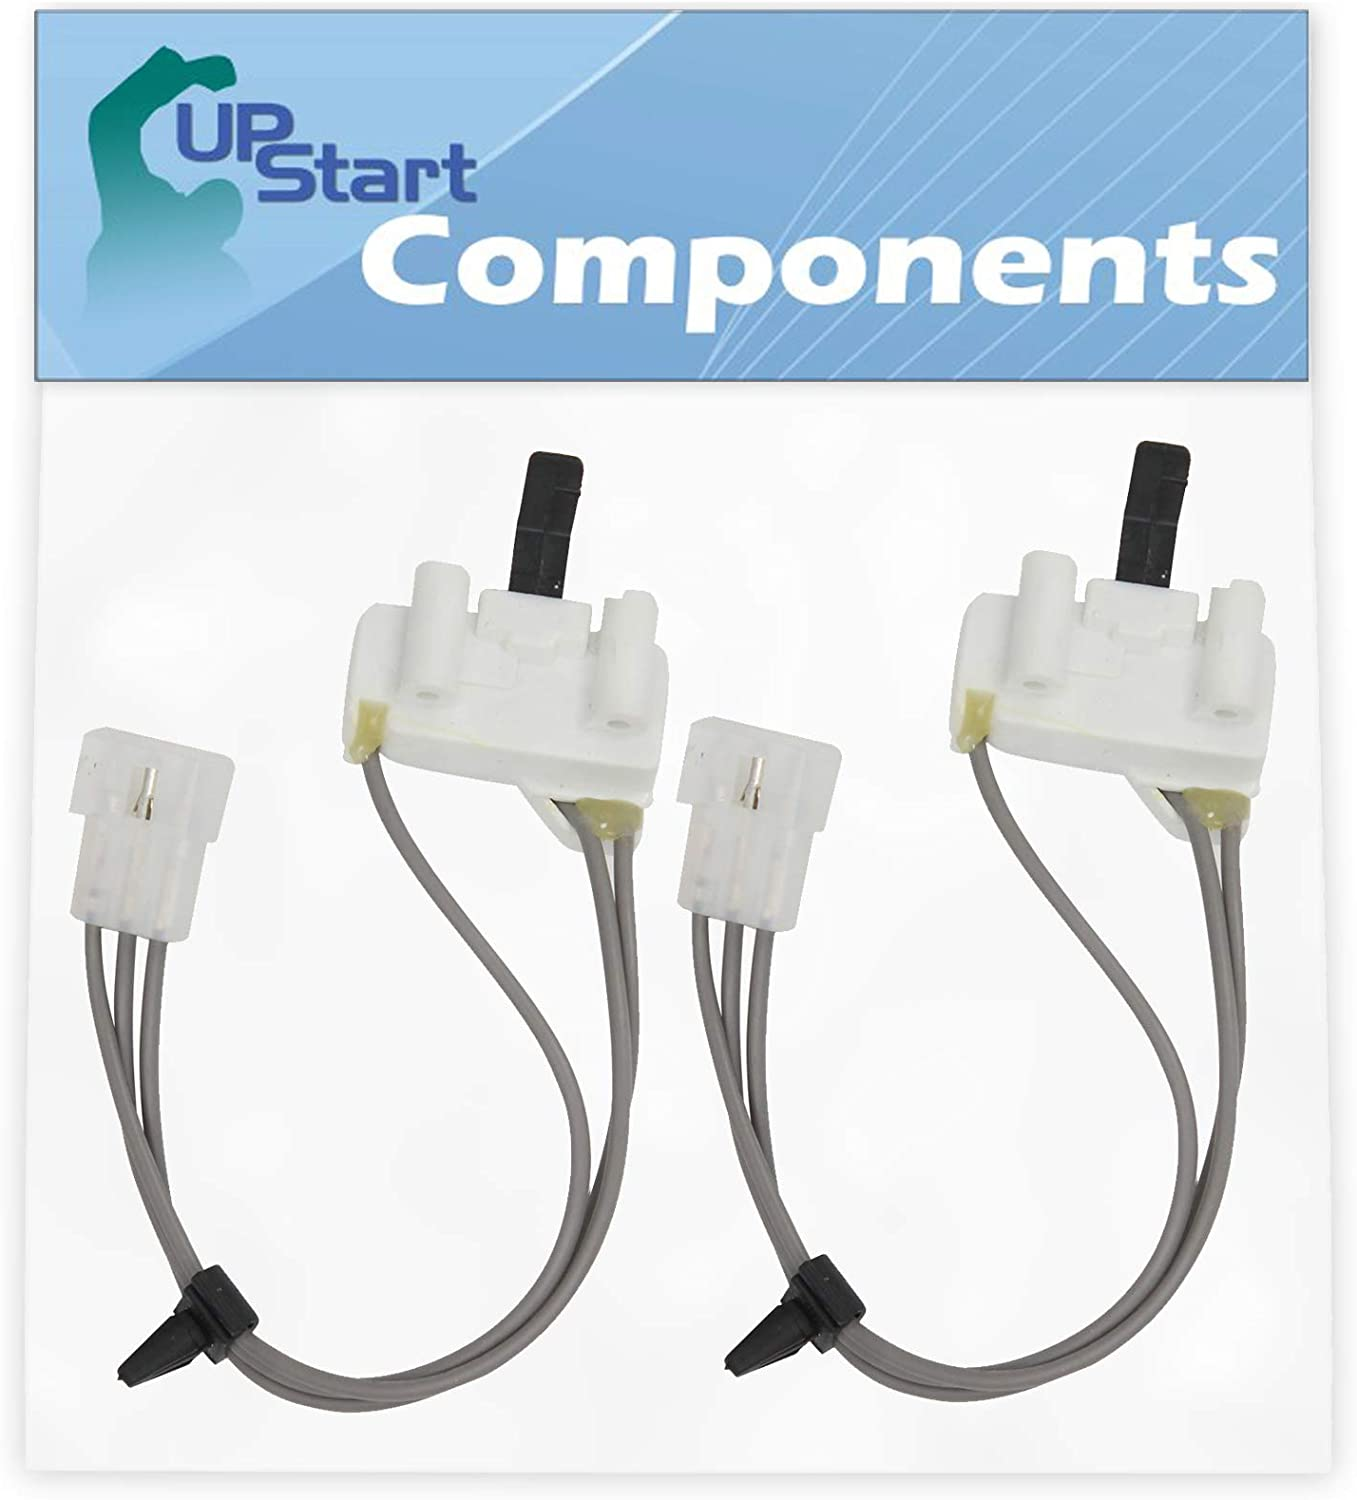 2-Pack 3406105 Dryer Door Switch Replacement for Whirlpool, Roper & Estate Dryers - Compatible with Part Number AP6008560, 3405104, 3405105, 3406104, PS11741700